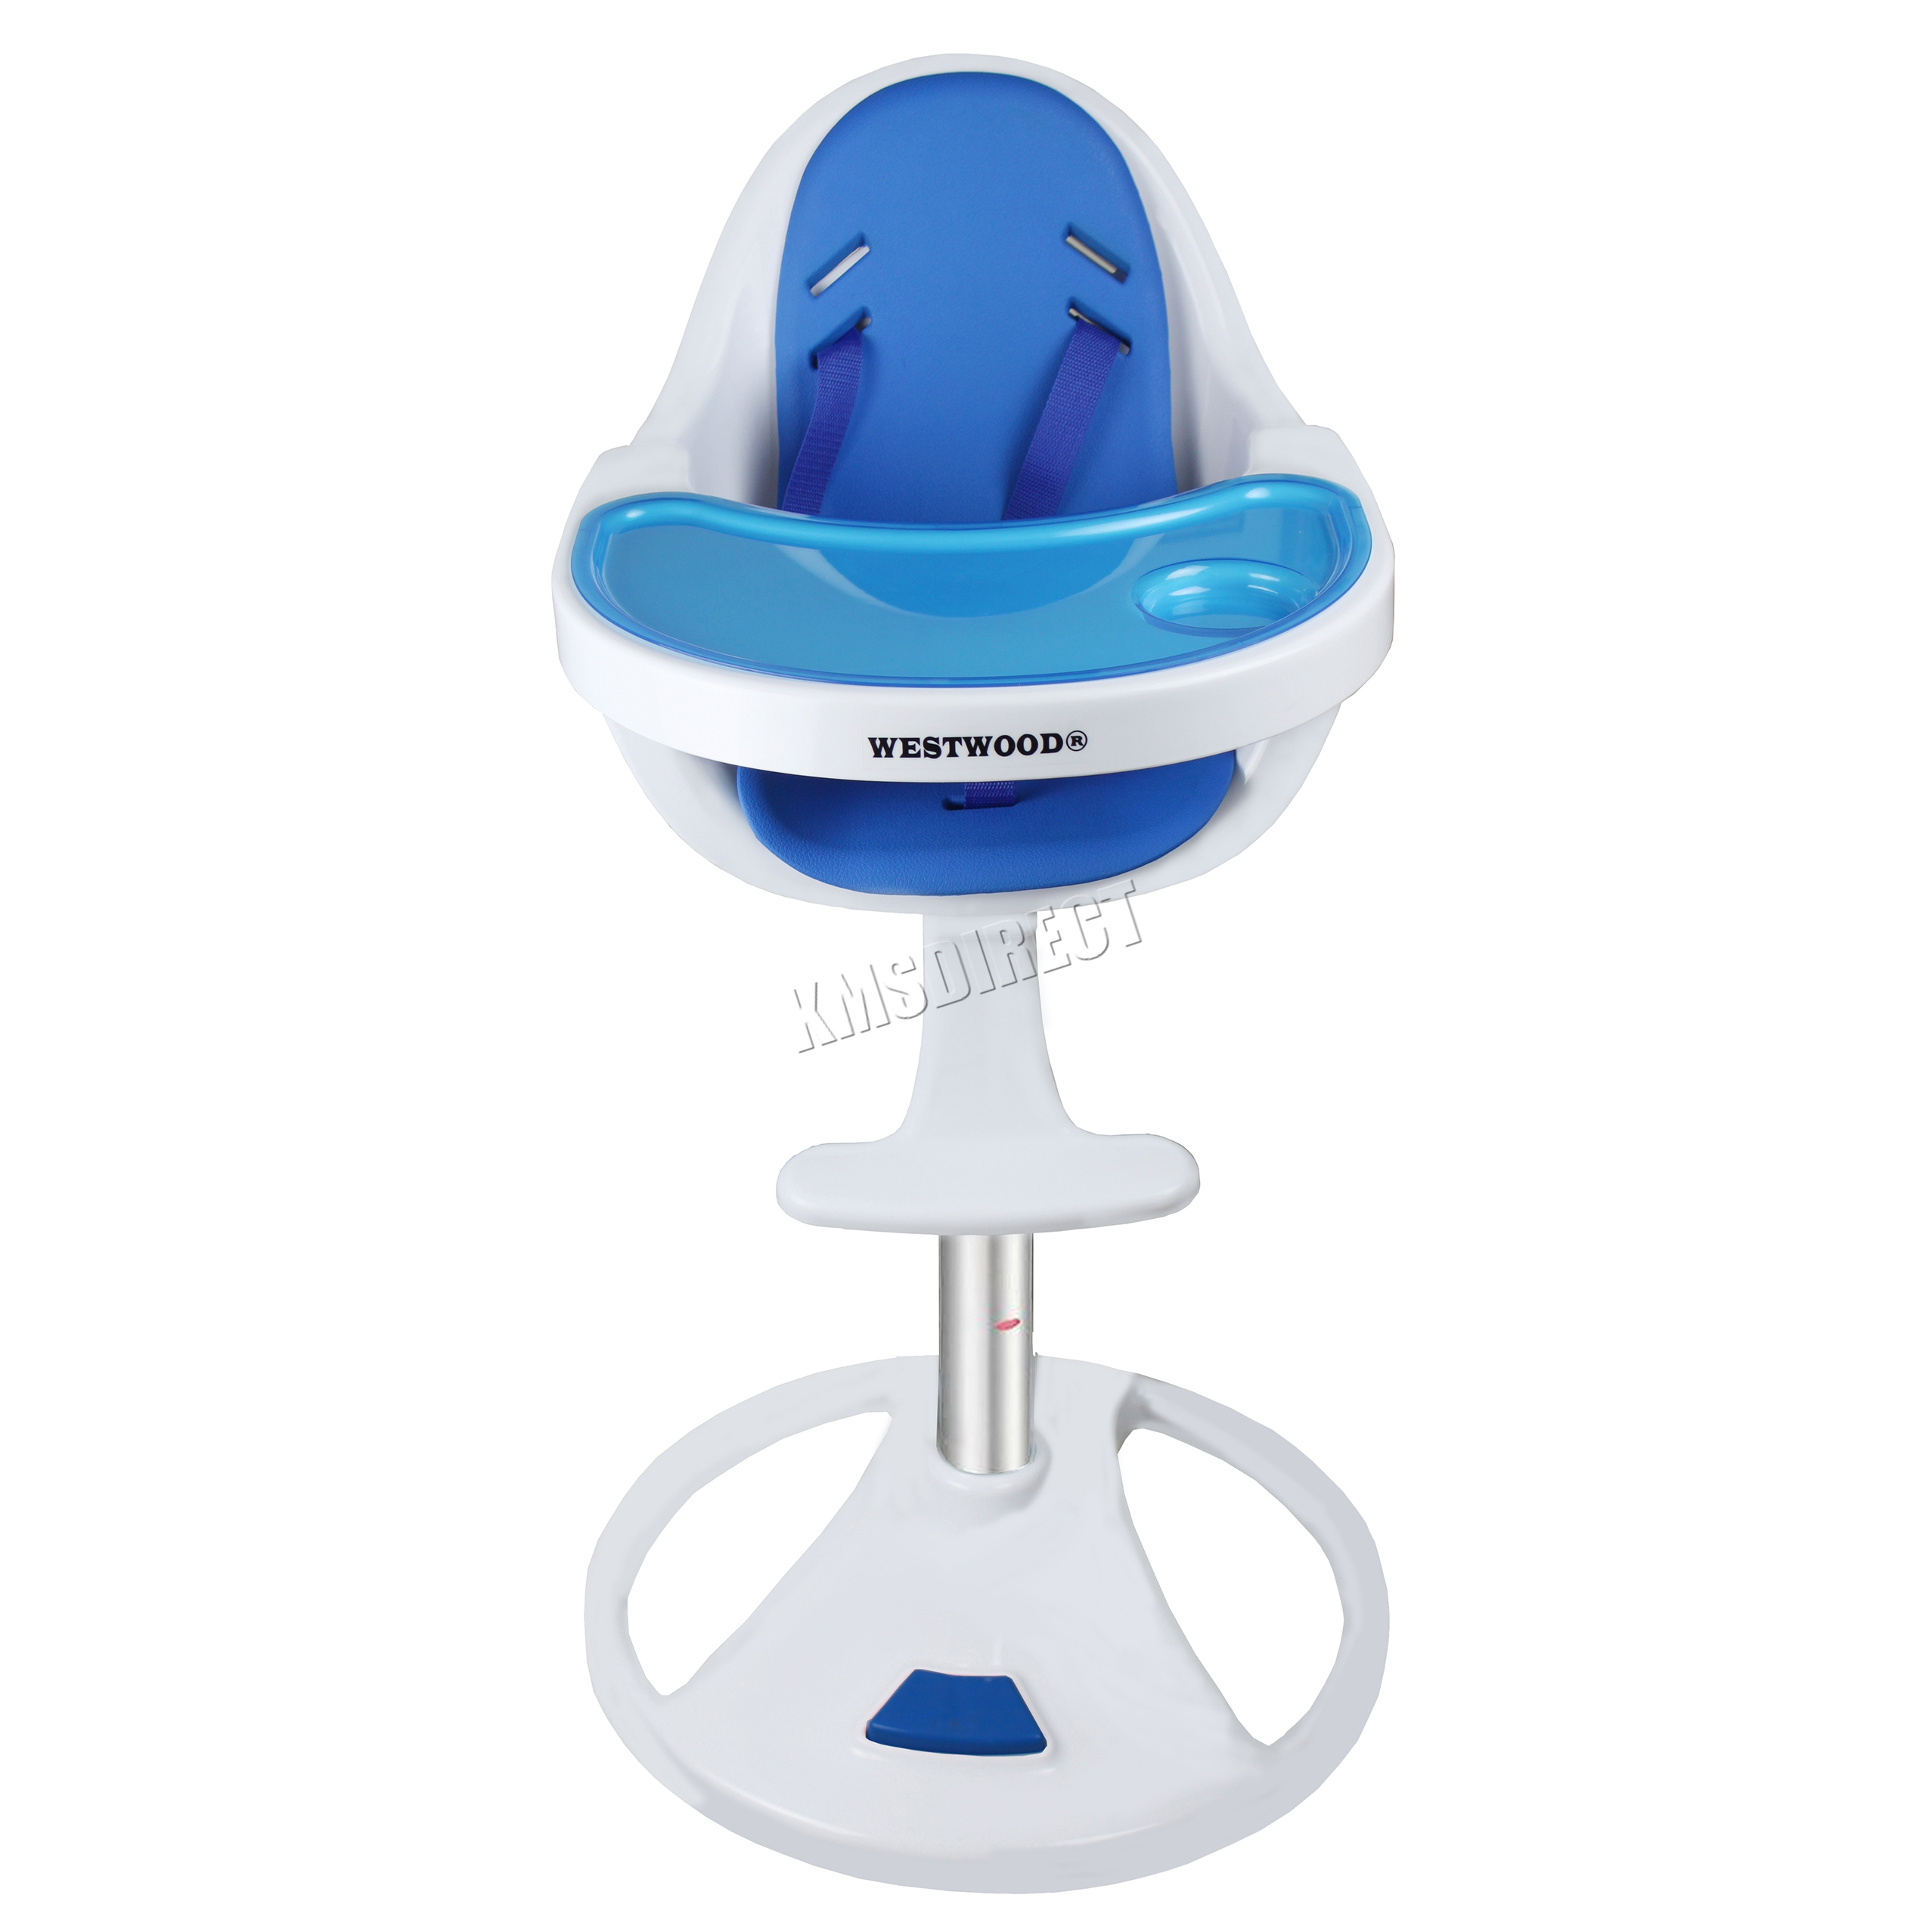 swivel high chair baby stool adalah westwood table 360 infant feeding